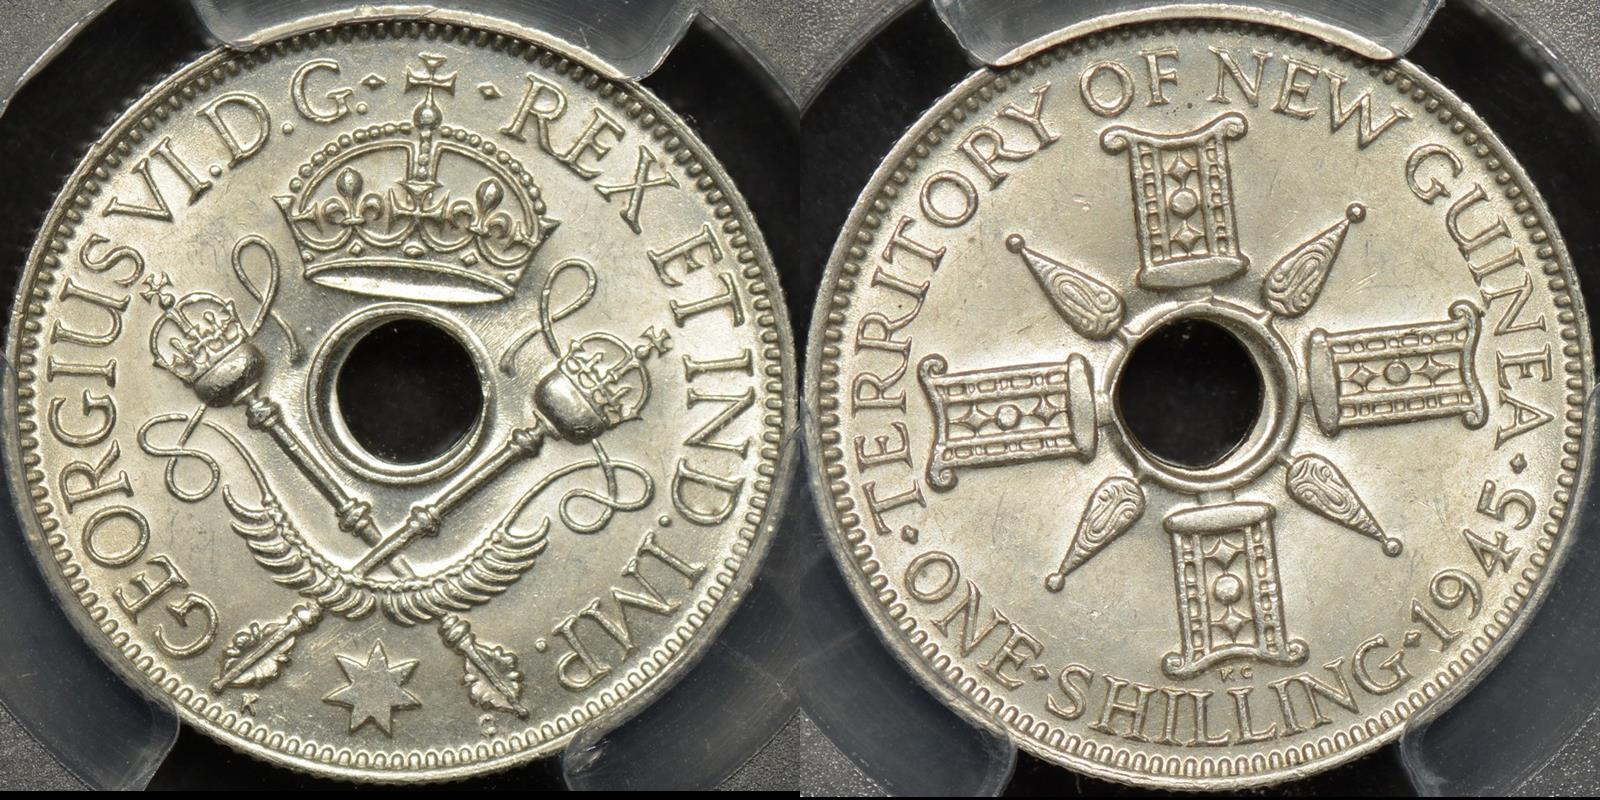 New guinea 1945 shilling 1s km 8 PCGS MS64 Choice Uncirculated